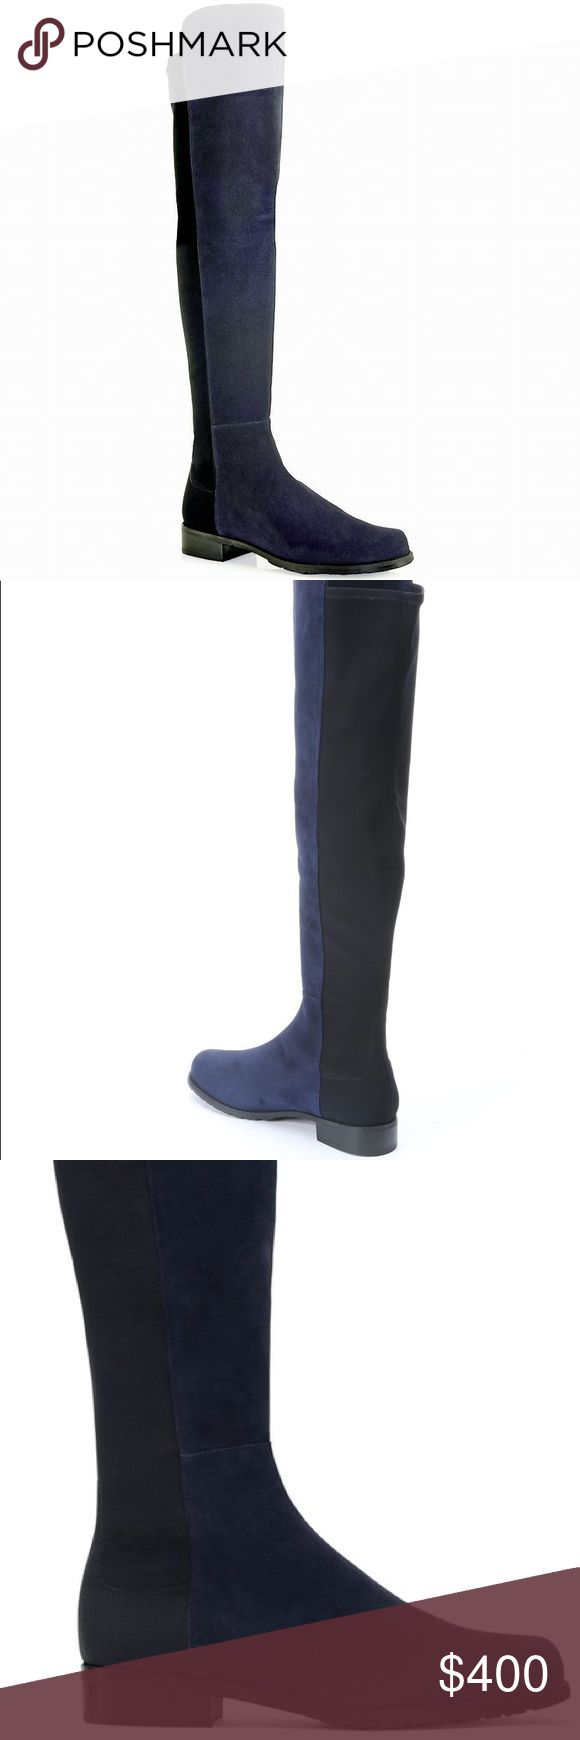 Stuart weitzman  5050 boot NWT in box never worn. Navy and black 5050 boots! Made by Stuart wiseman. So comfortable in works for 9 1/2- 10 Stuart Weitzman Shoes Over the Knee Boots